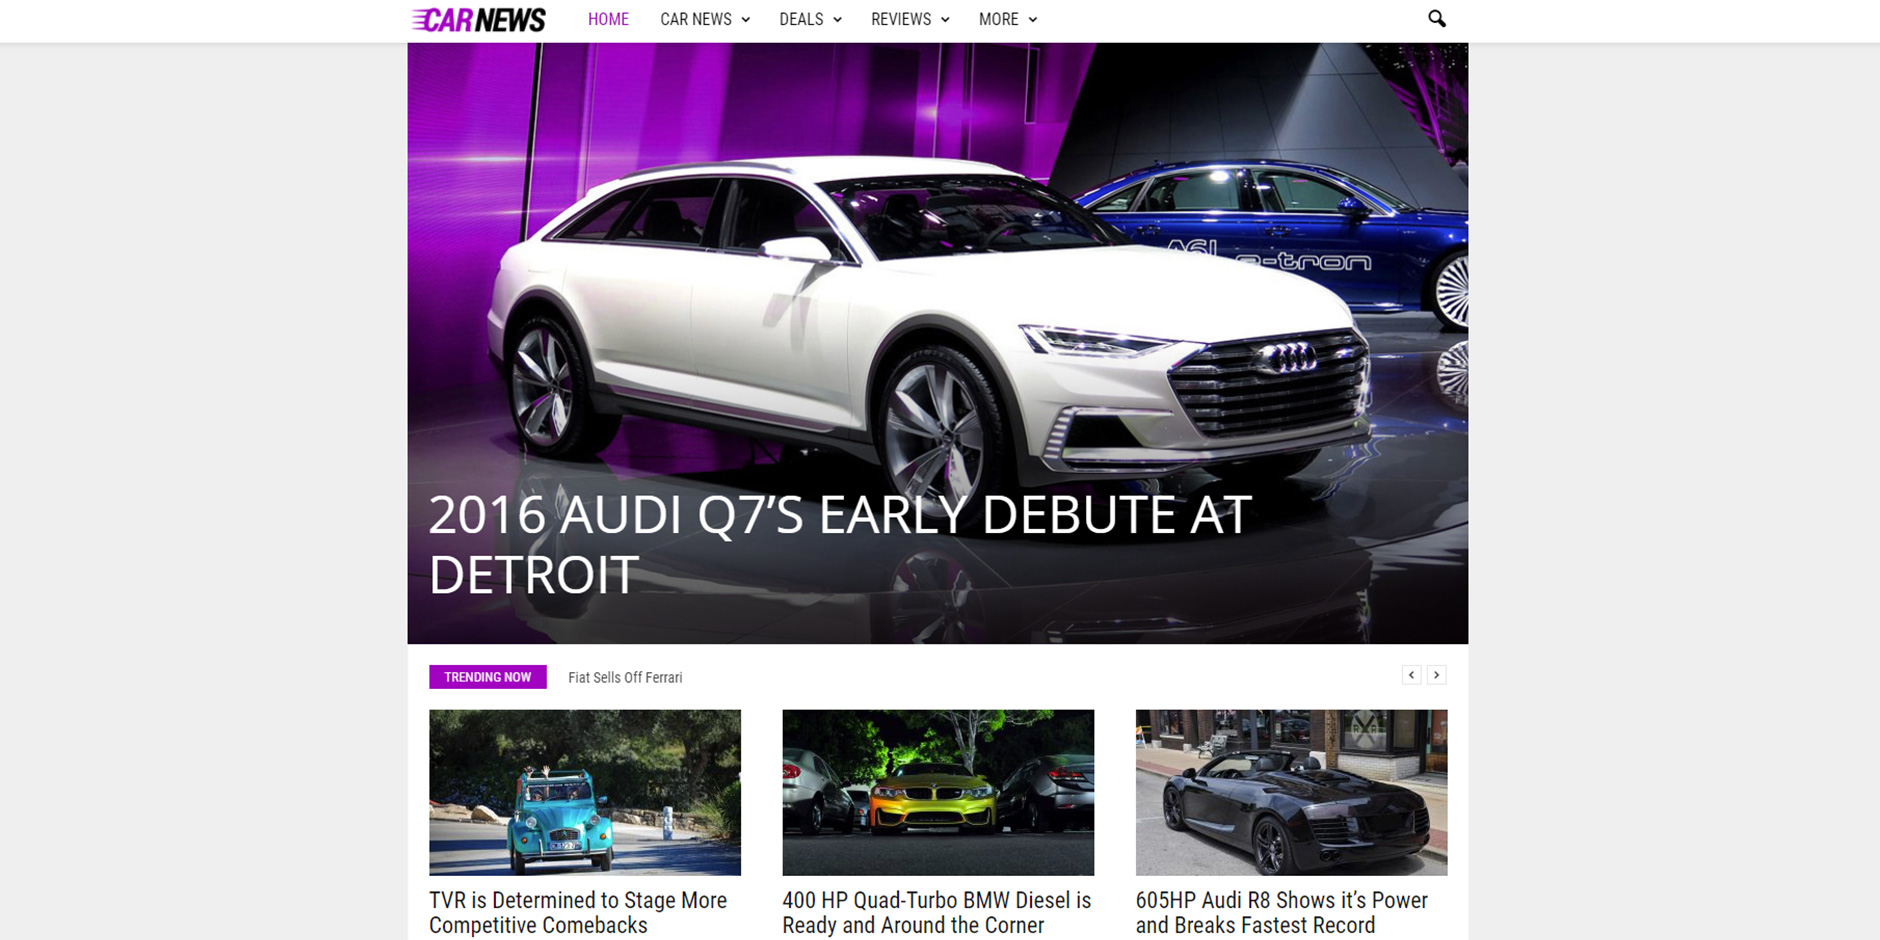 Newsmag_Car_News_Demo